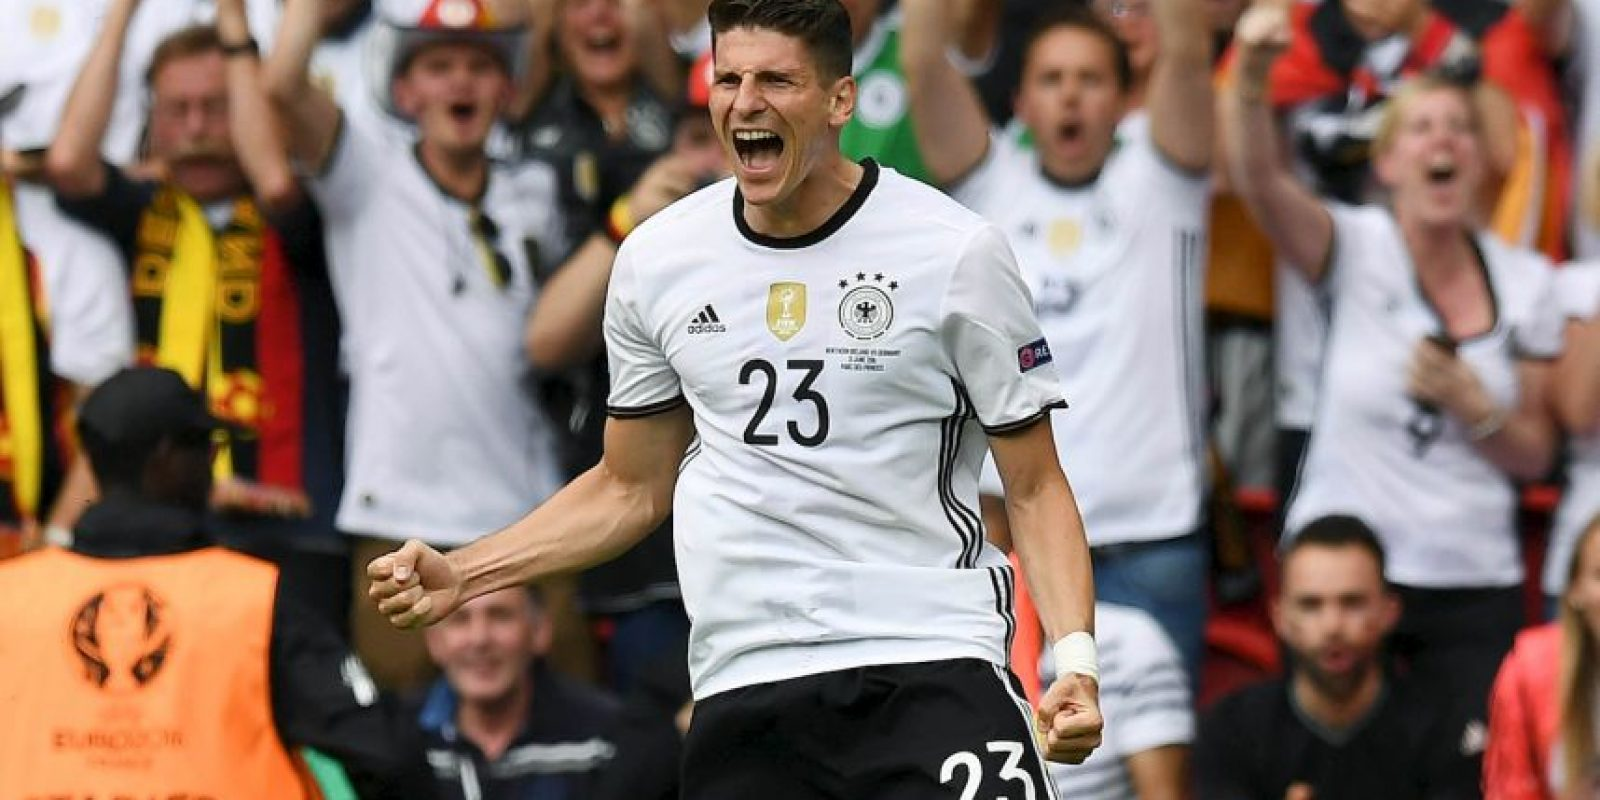 Alemania Foto: Getty Images